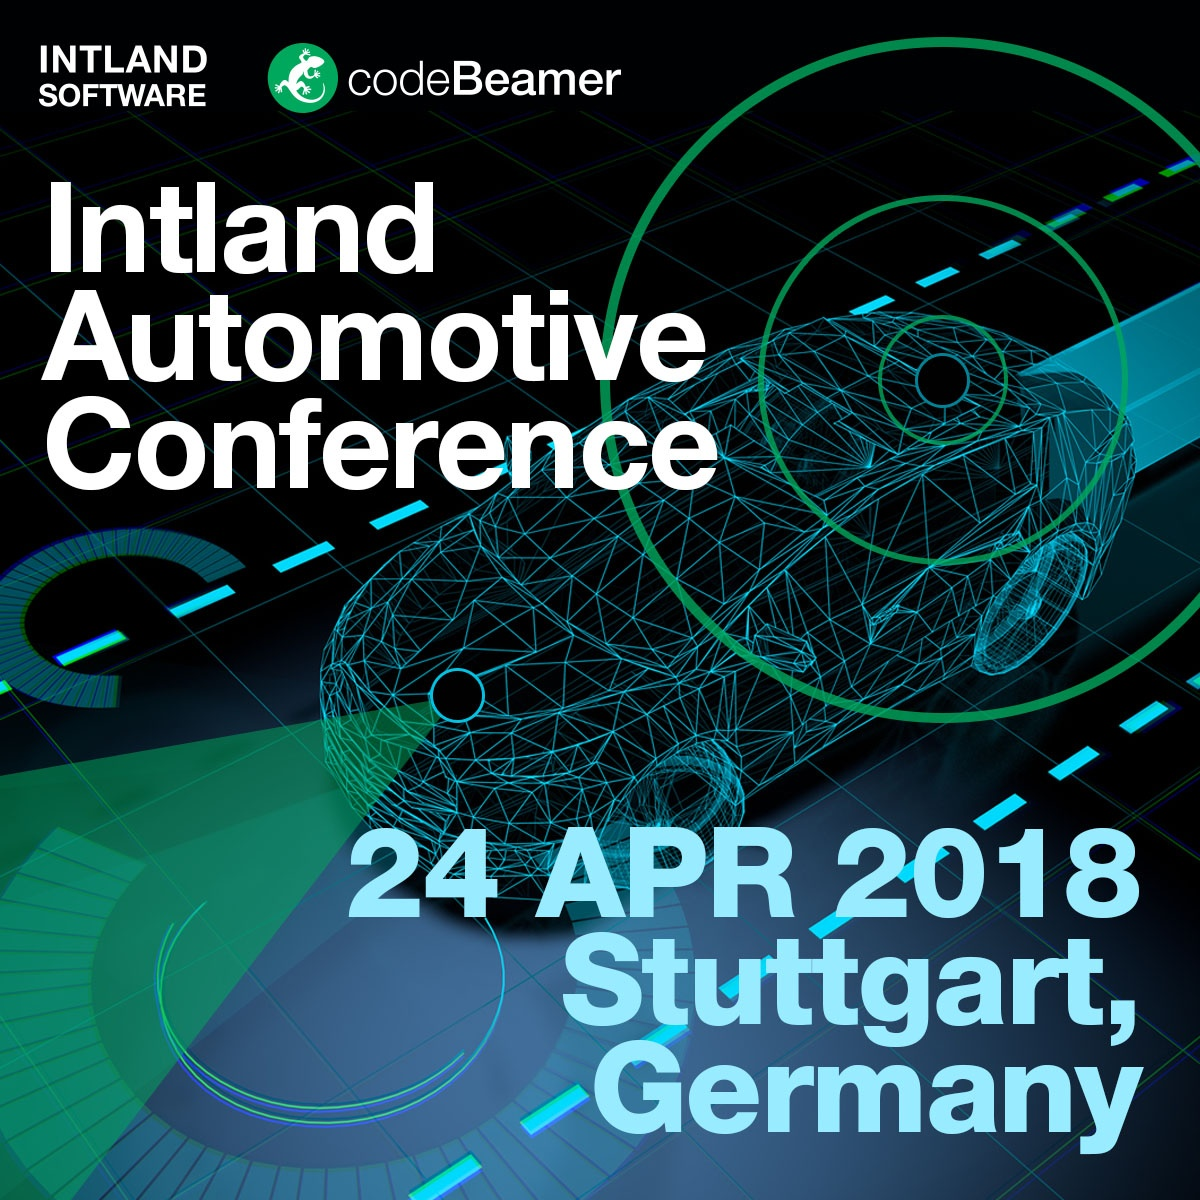 Save the date: Intland Automotive Conference 24 Apr 2018